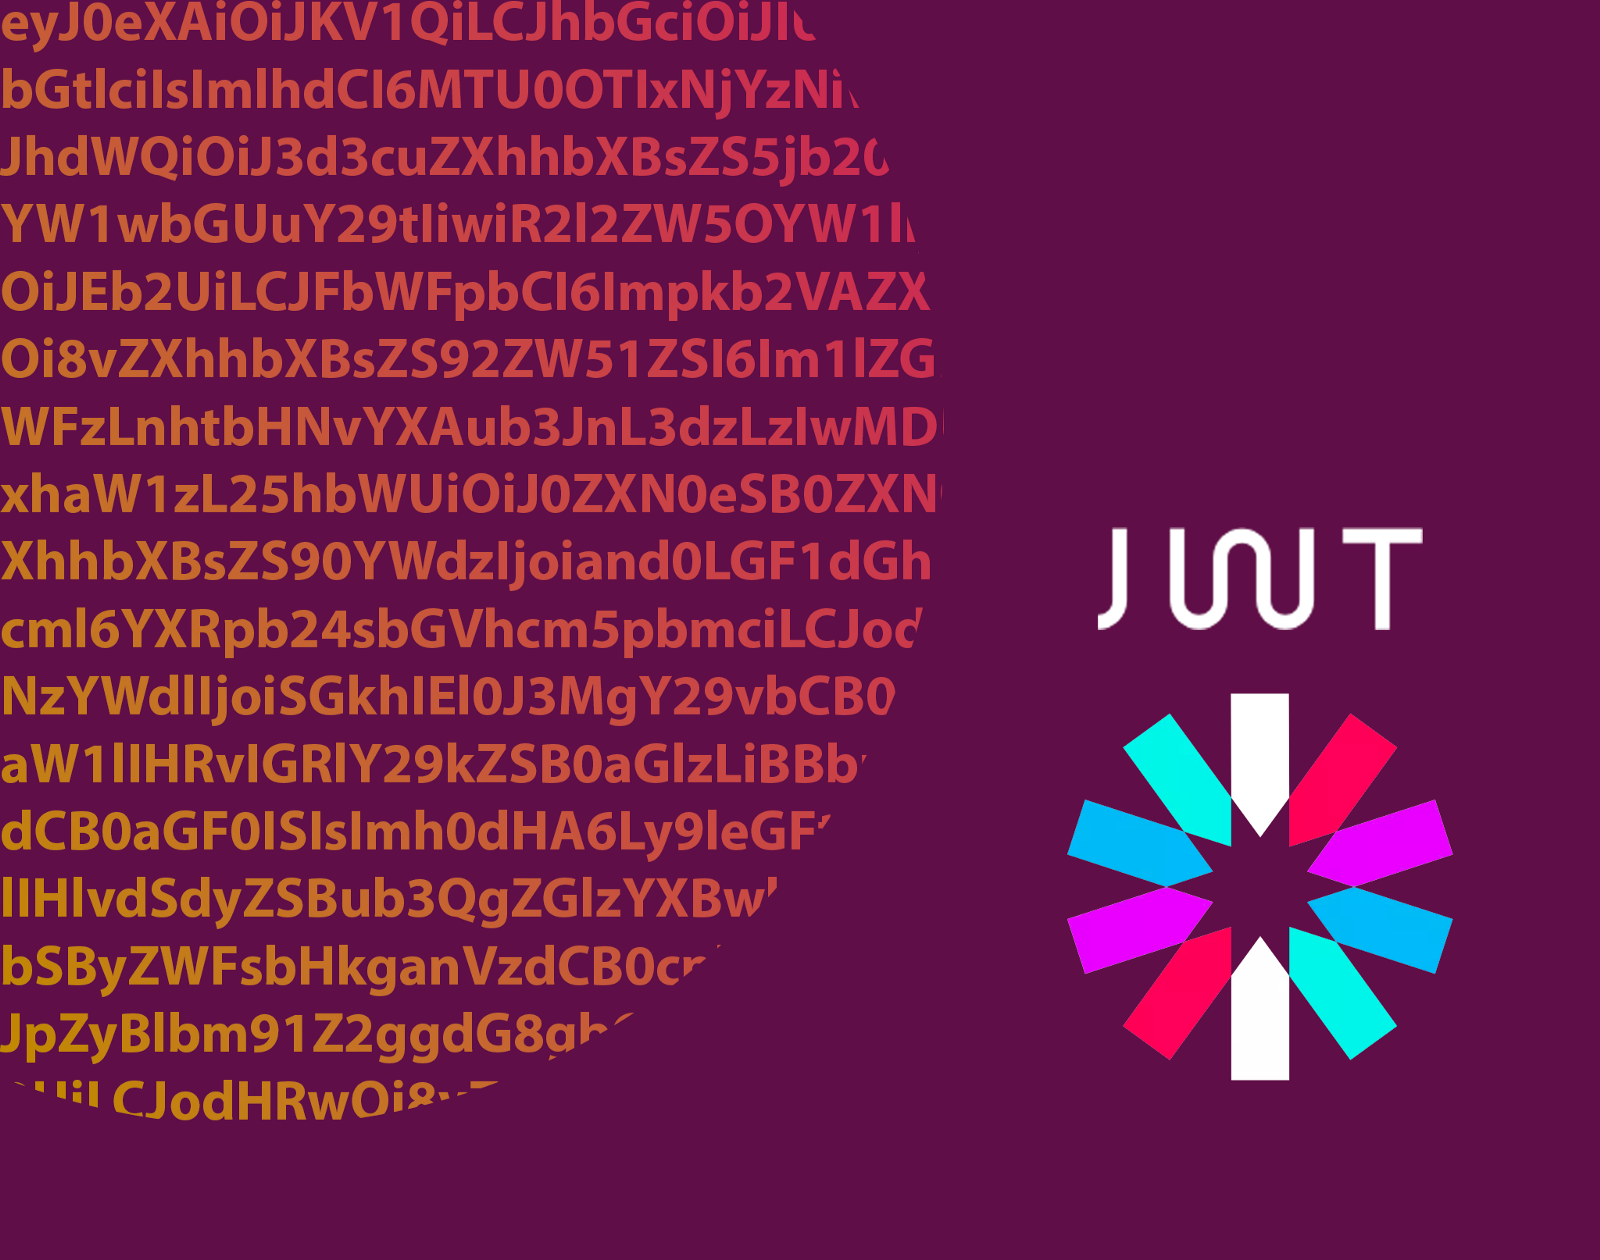 /json-web-tokens-jwt-demystified-f7e202249640 feature image